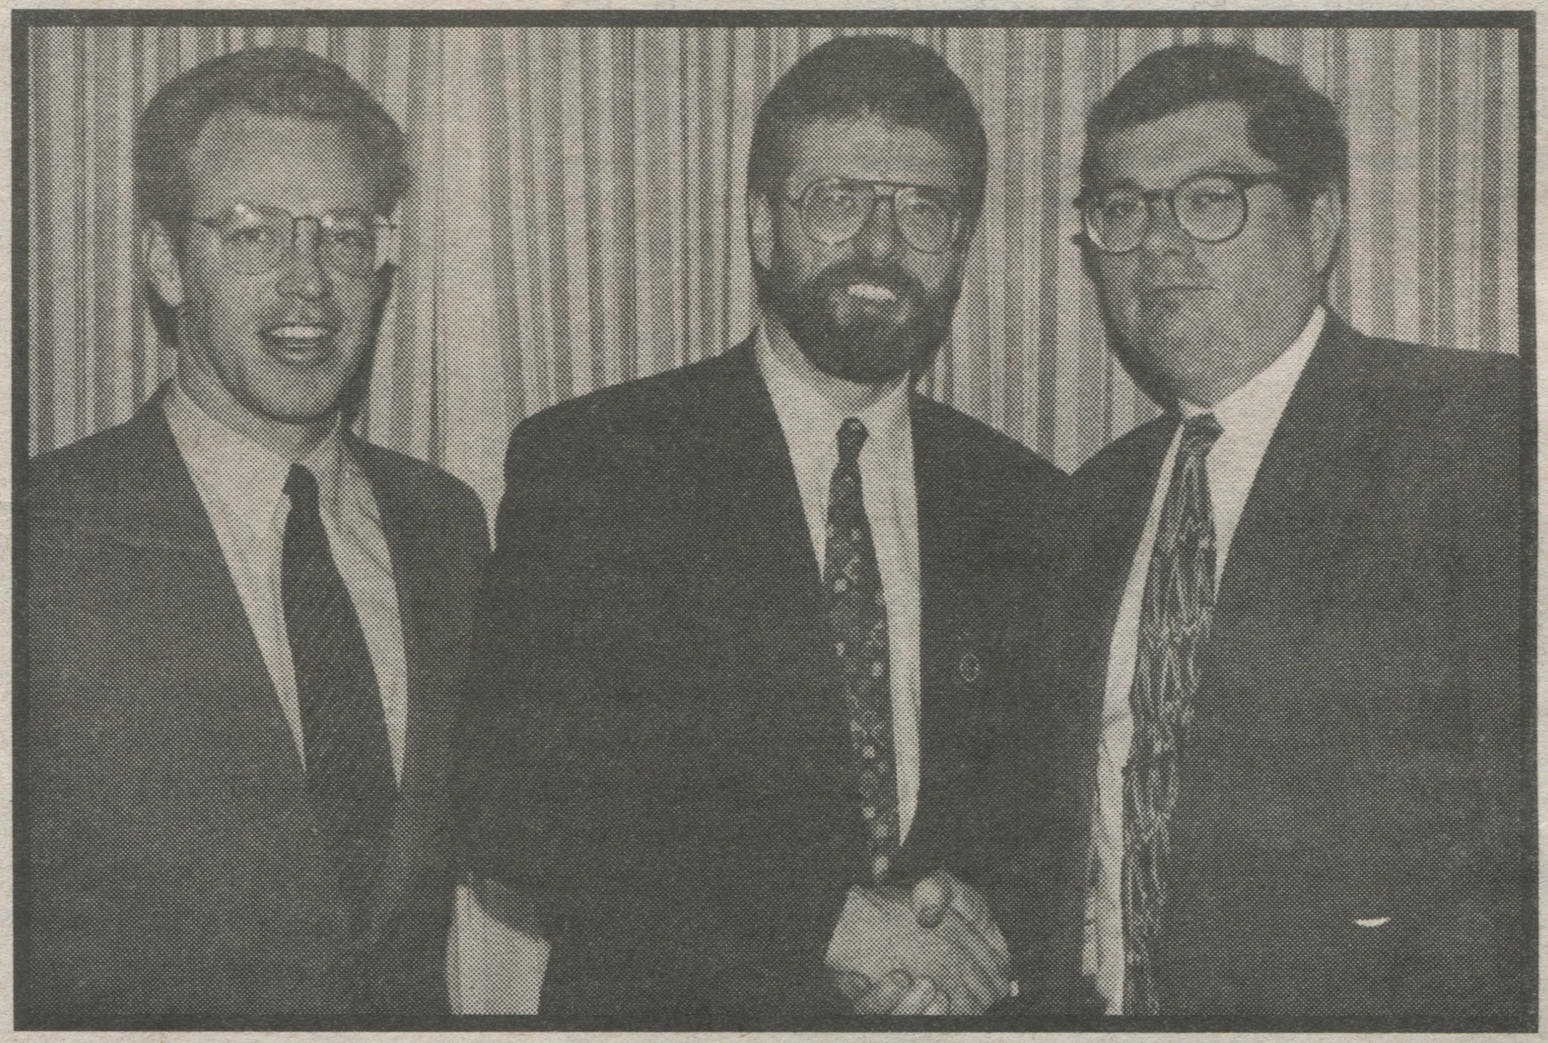 Bill Lenahan (left) and Joe Jamison (right) with Gerry Adams in 1994. (Irish Voice)